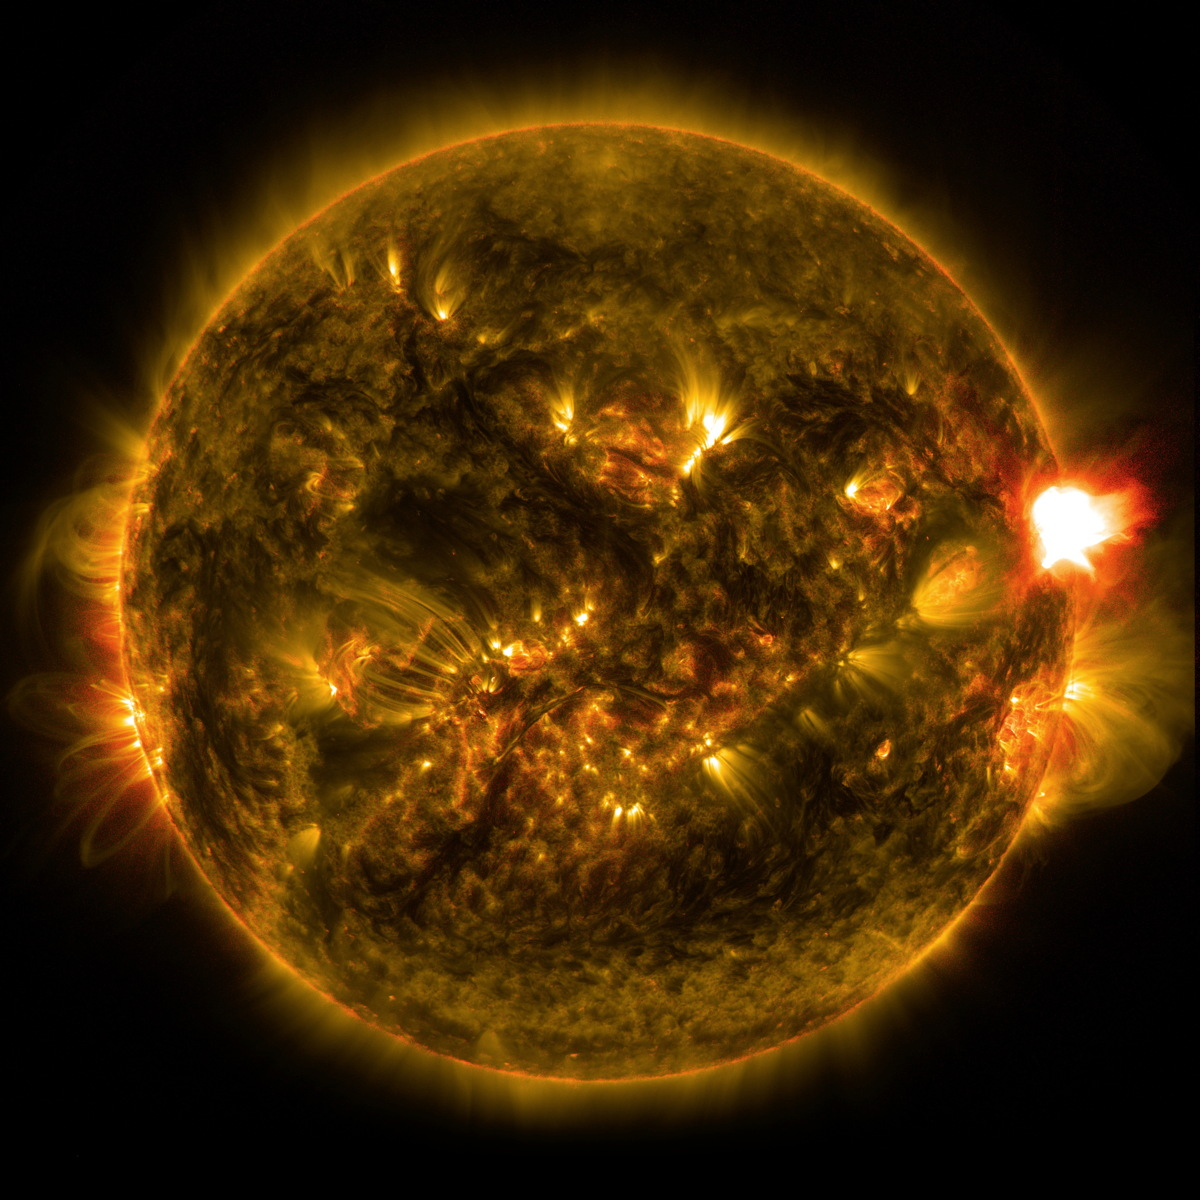 First Solar Flare of 2015